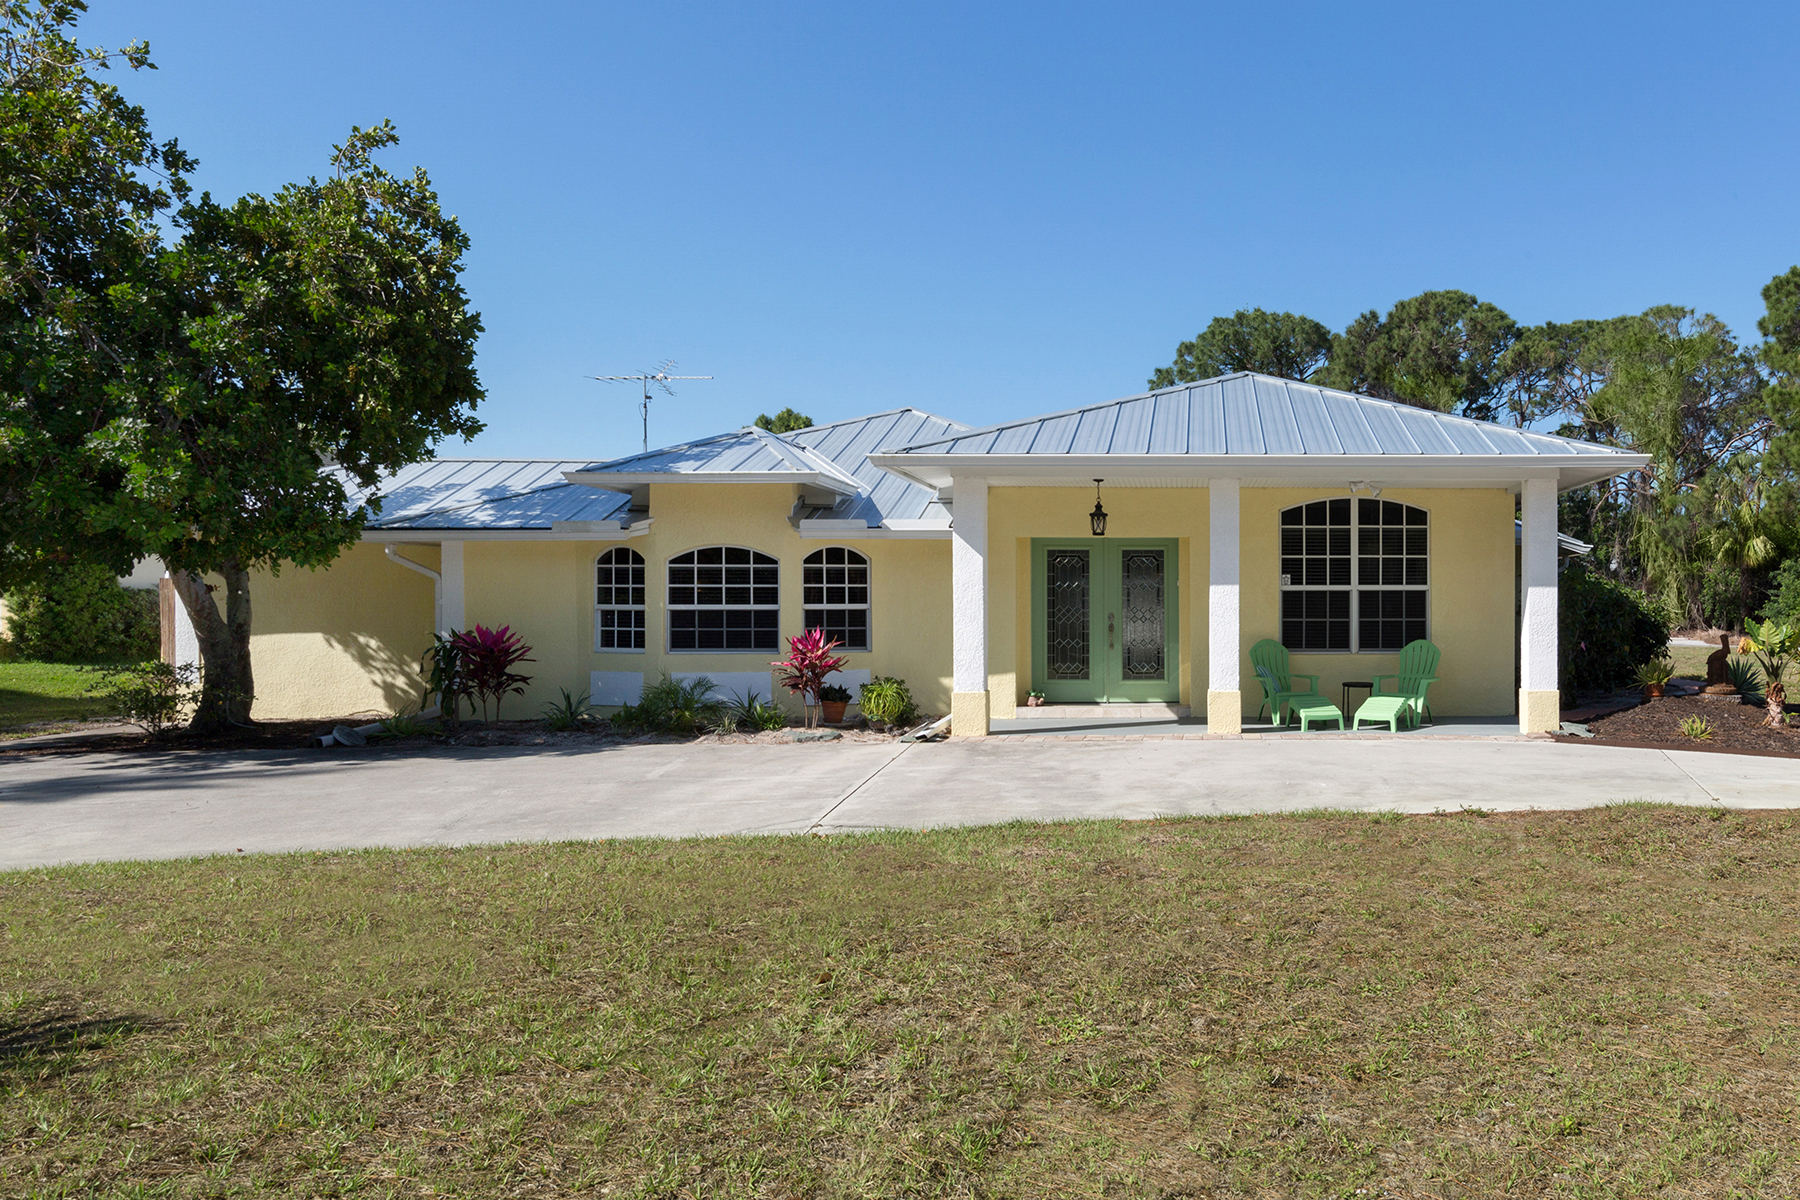 Single Family Homes for Sale at ENGLEWOOD 1490 Alamander Ave Englewood, Florida 34223 United States